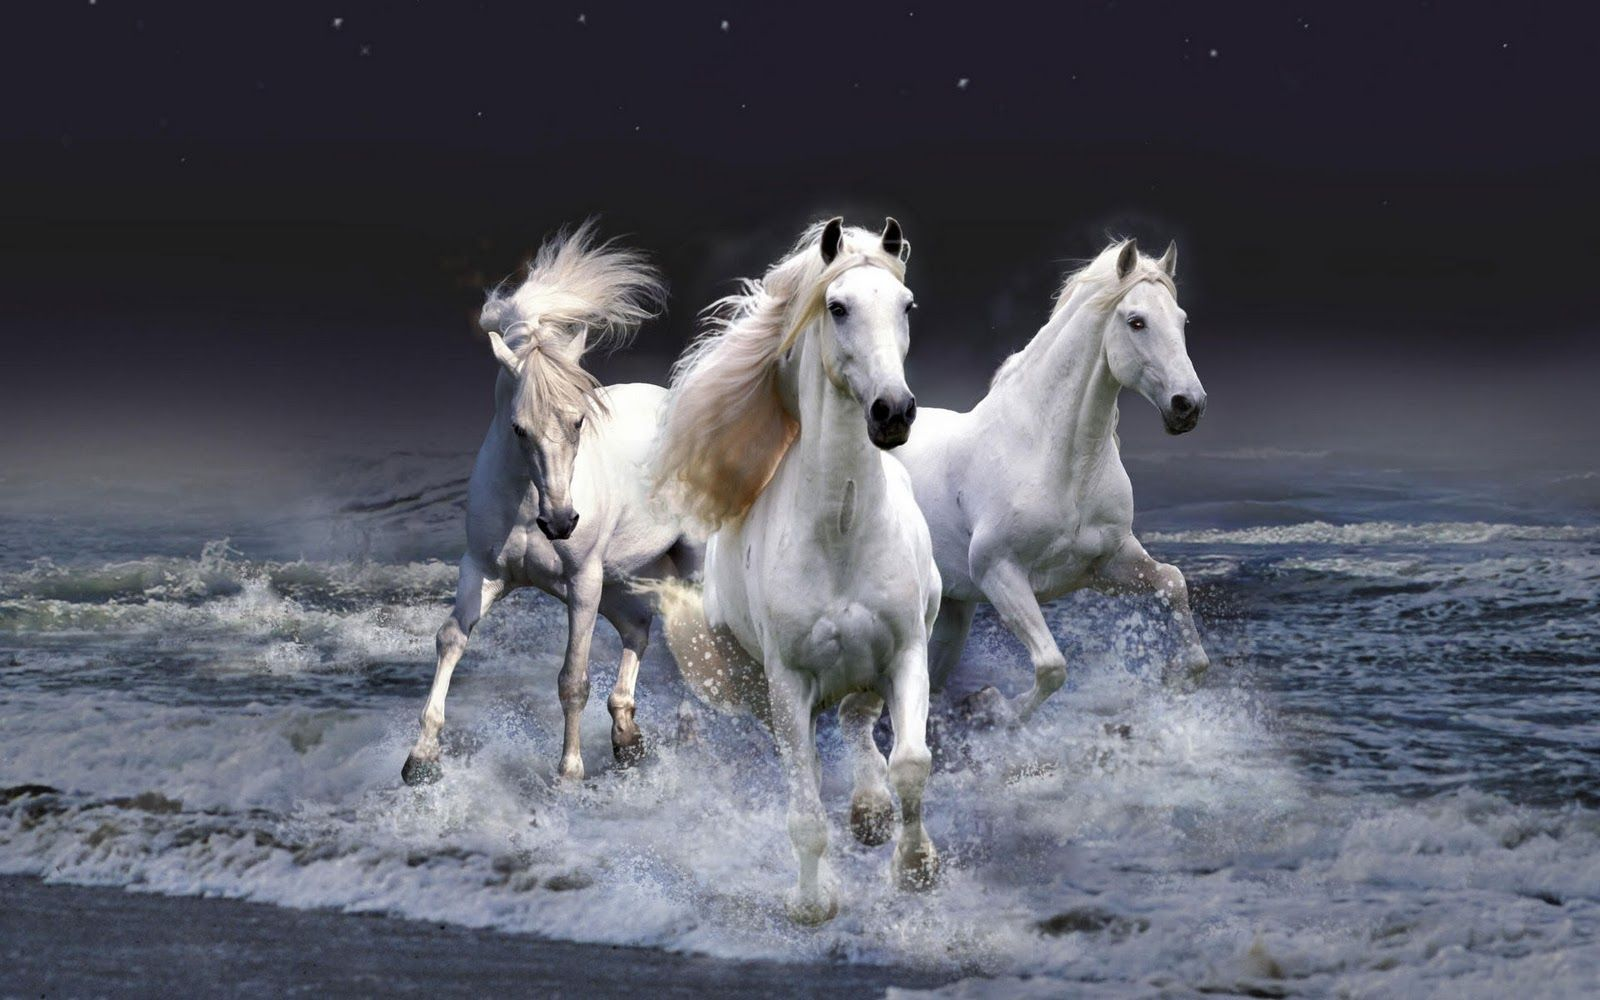 Pin By Ismey Maresch On Beautiful Horses Horse Wallpaper Horses White Horses